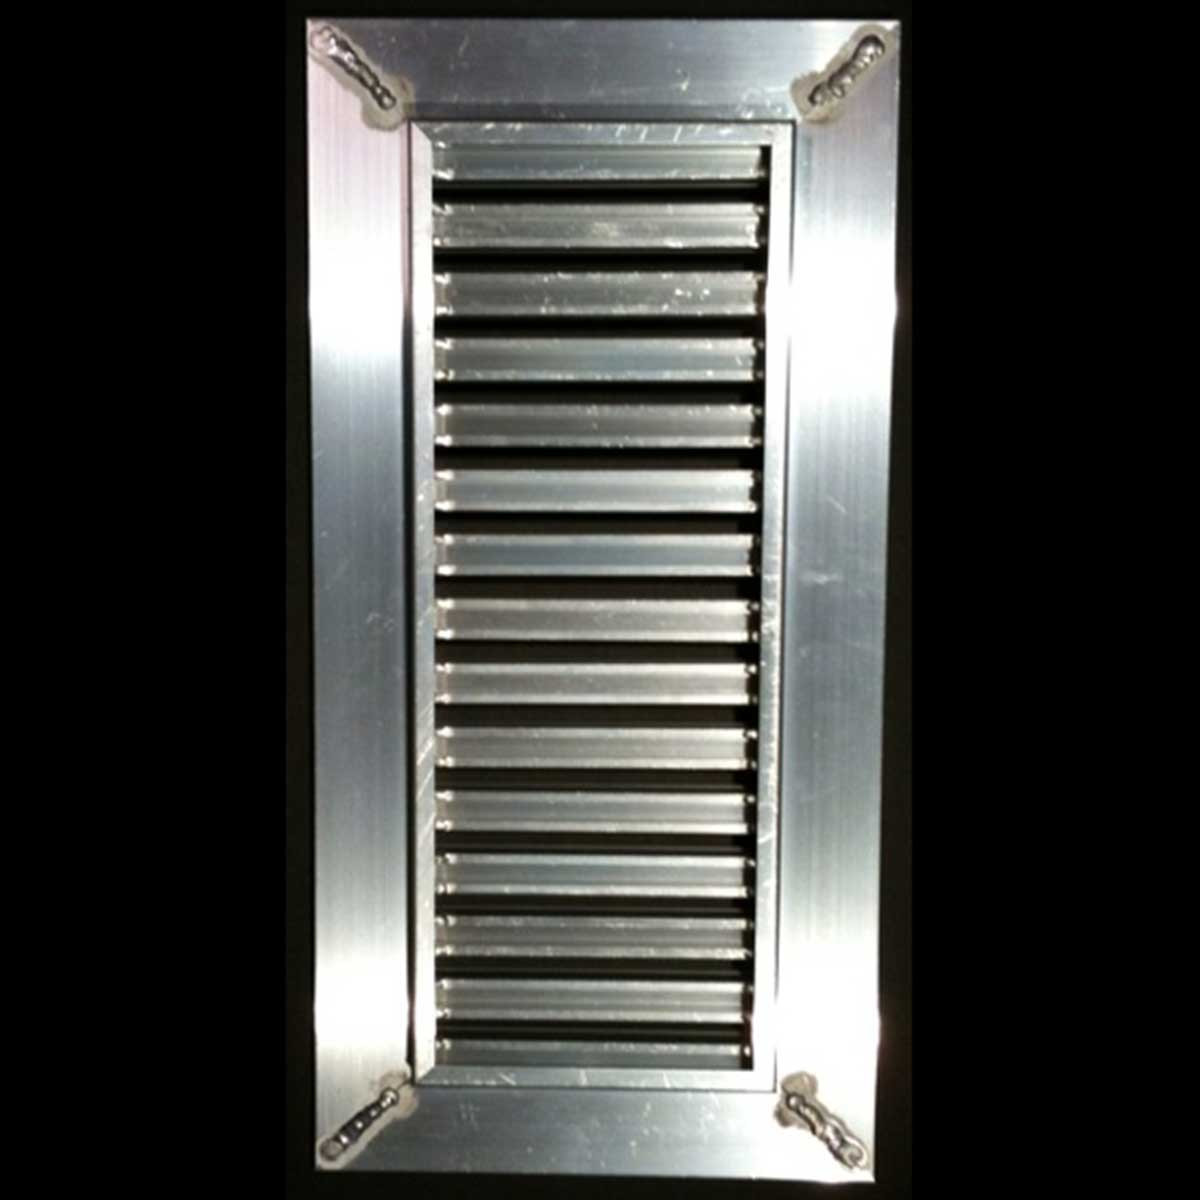 5/16th inch Vent Floor Registers